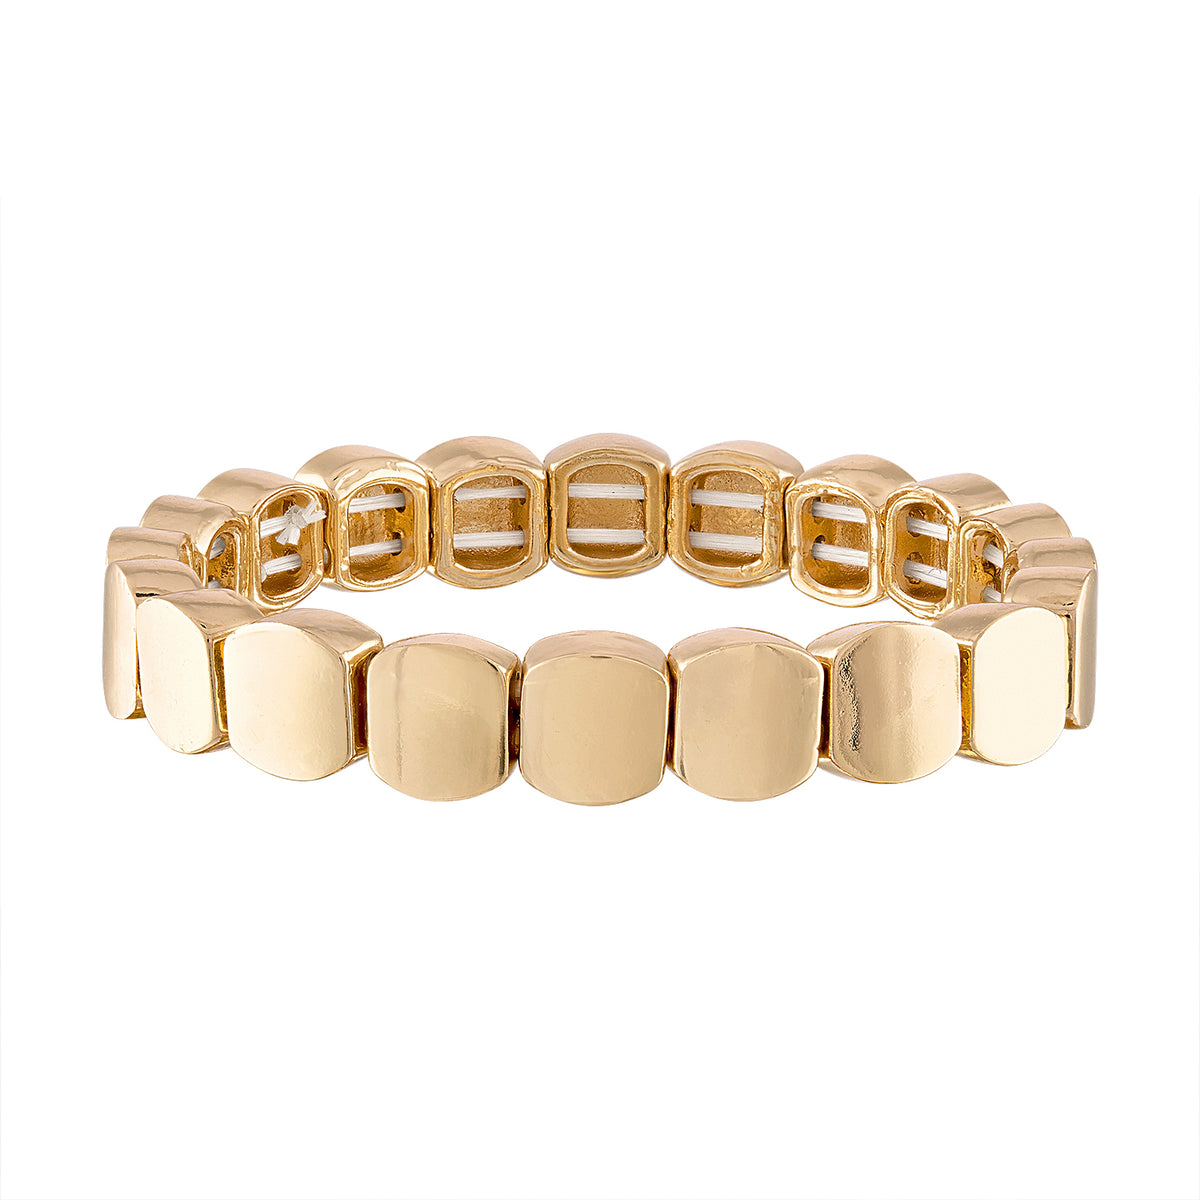 Stretch Tile Bracelet